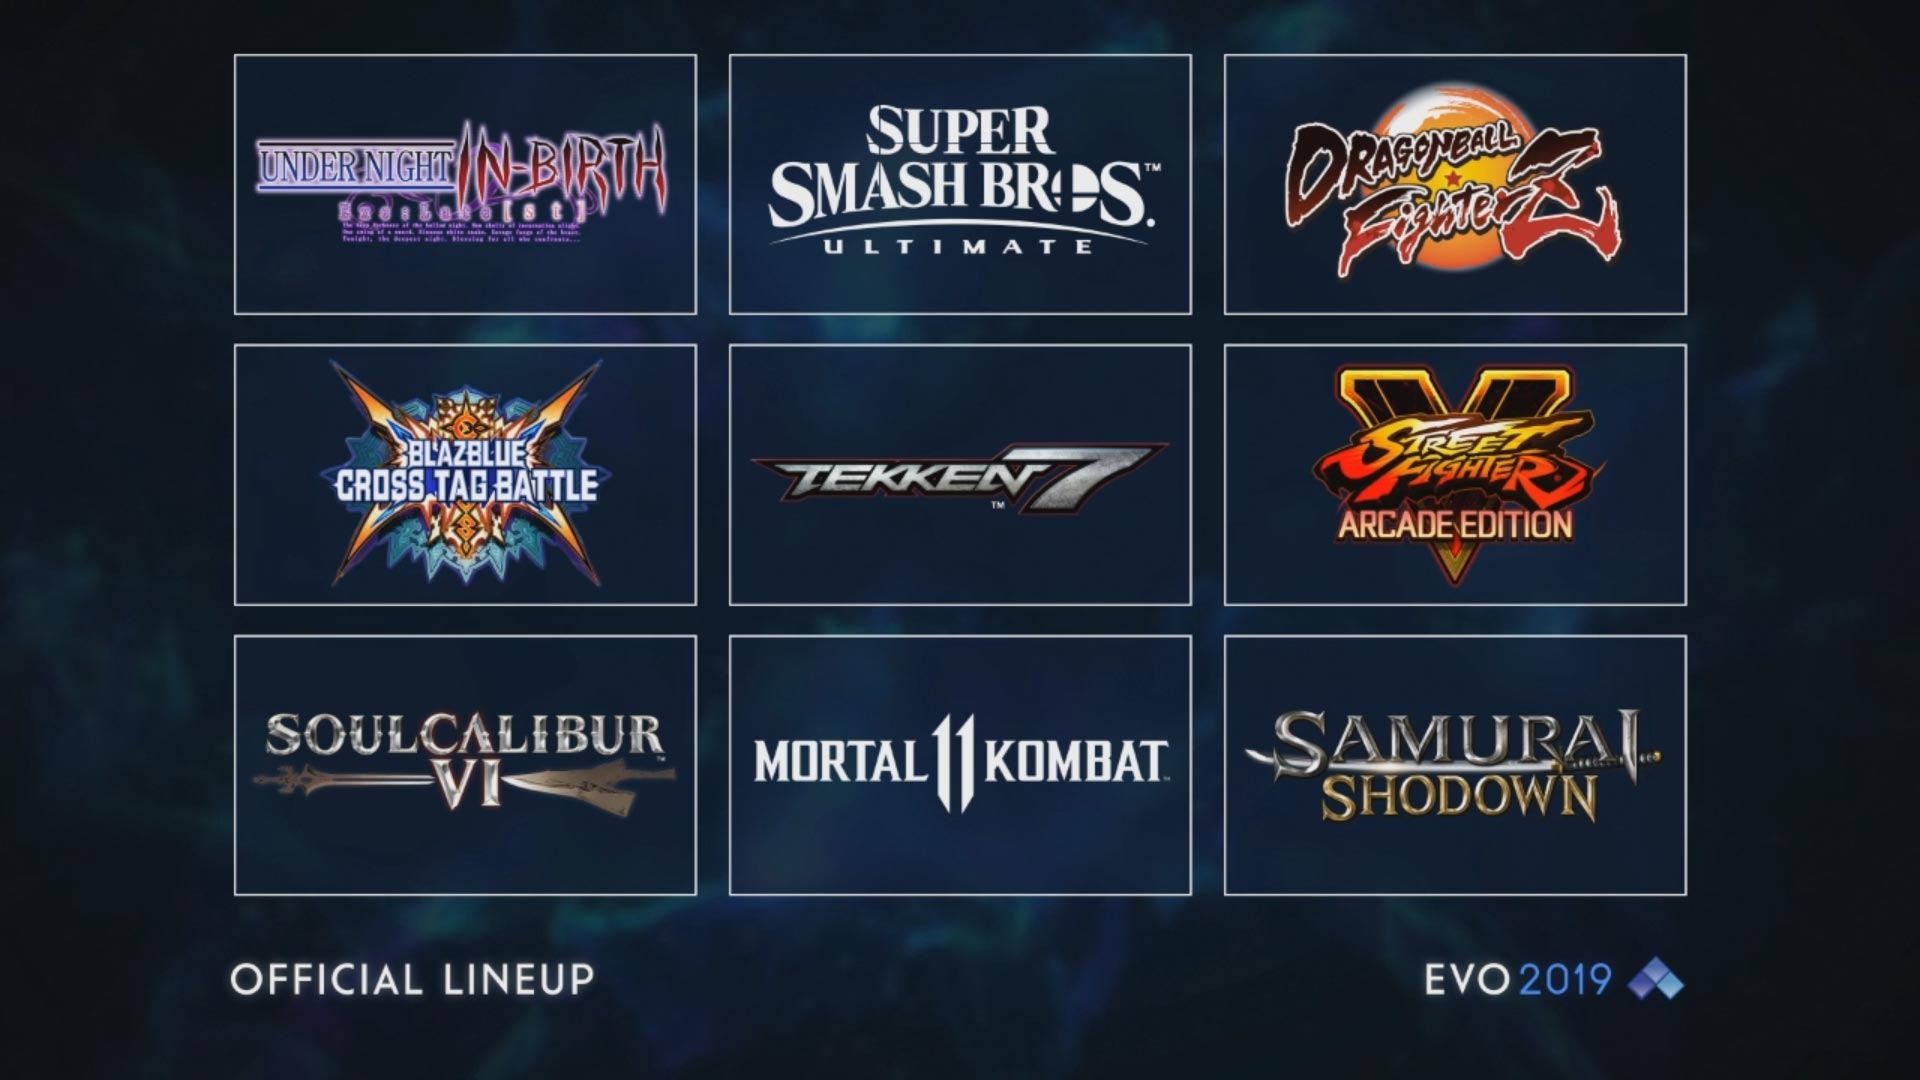 EVO 2019 game lineup 1 out of 1 image gallery